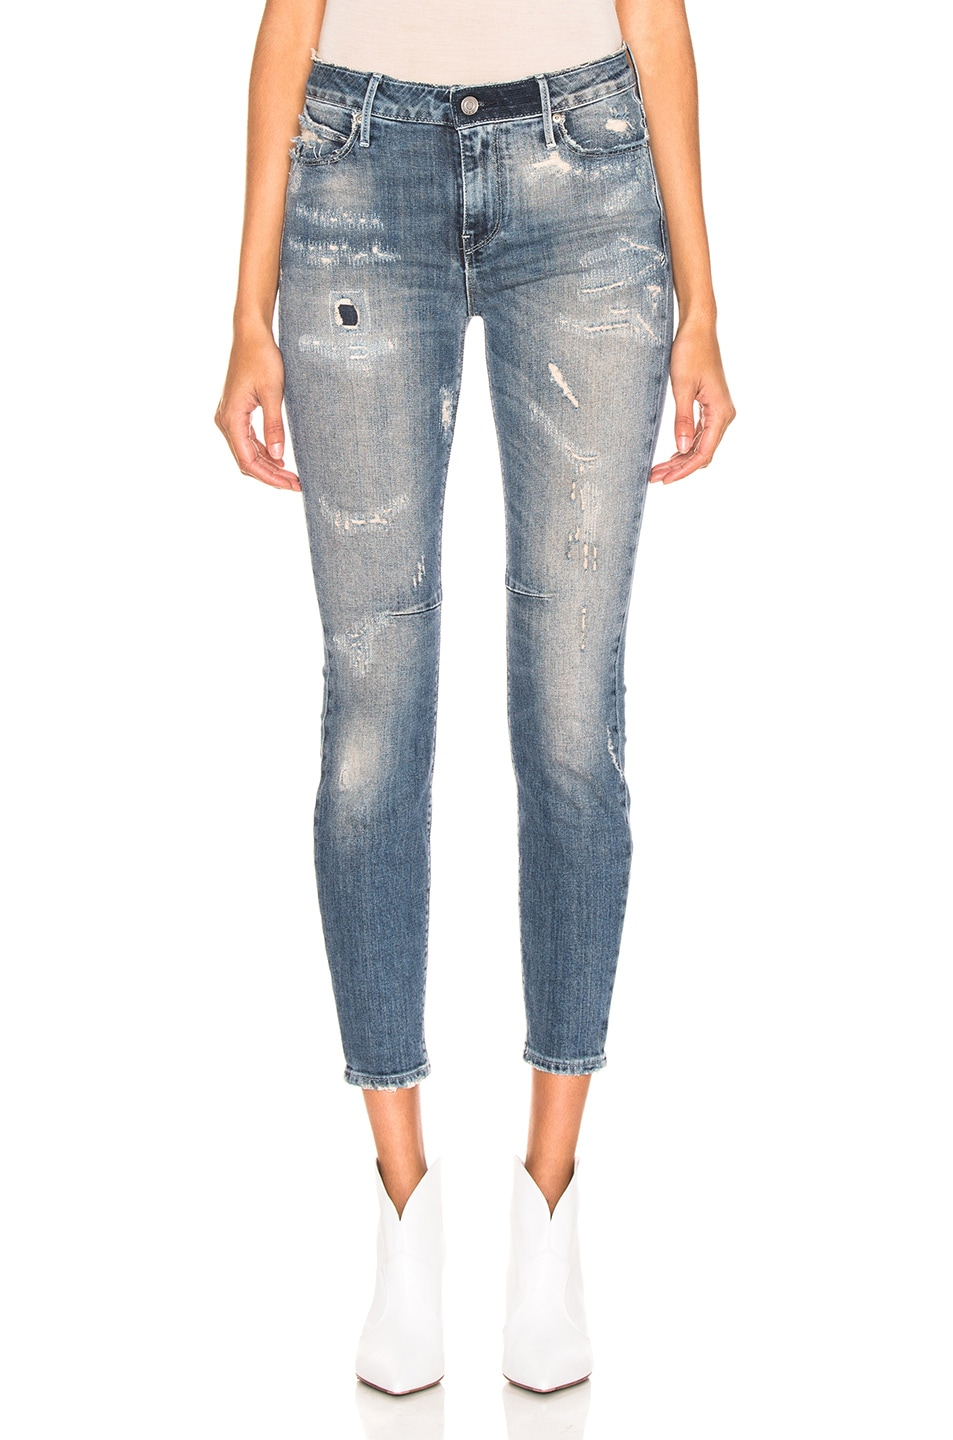 Image 1 of RtA Monroe Jeans in LA Grande Blue